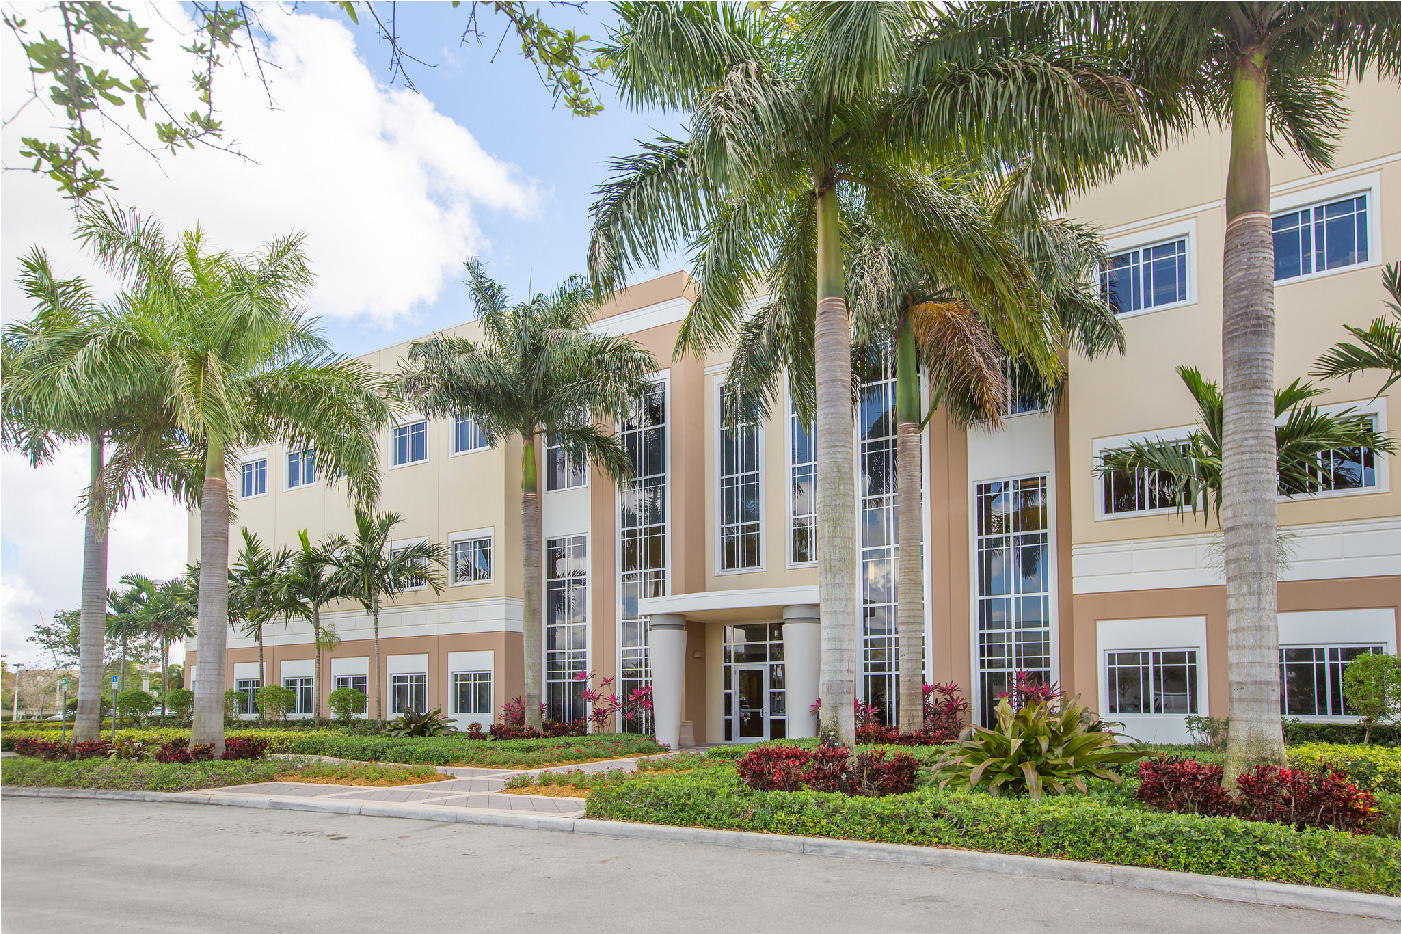 admissions essay for university of miami St thomas university in miami, fl is your path towards a brighter future learn more about stu's acceptance rate, application and admissions process.